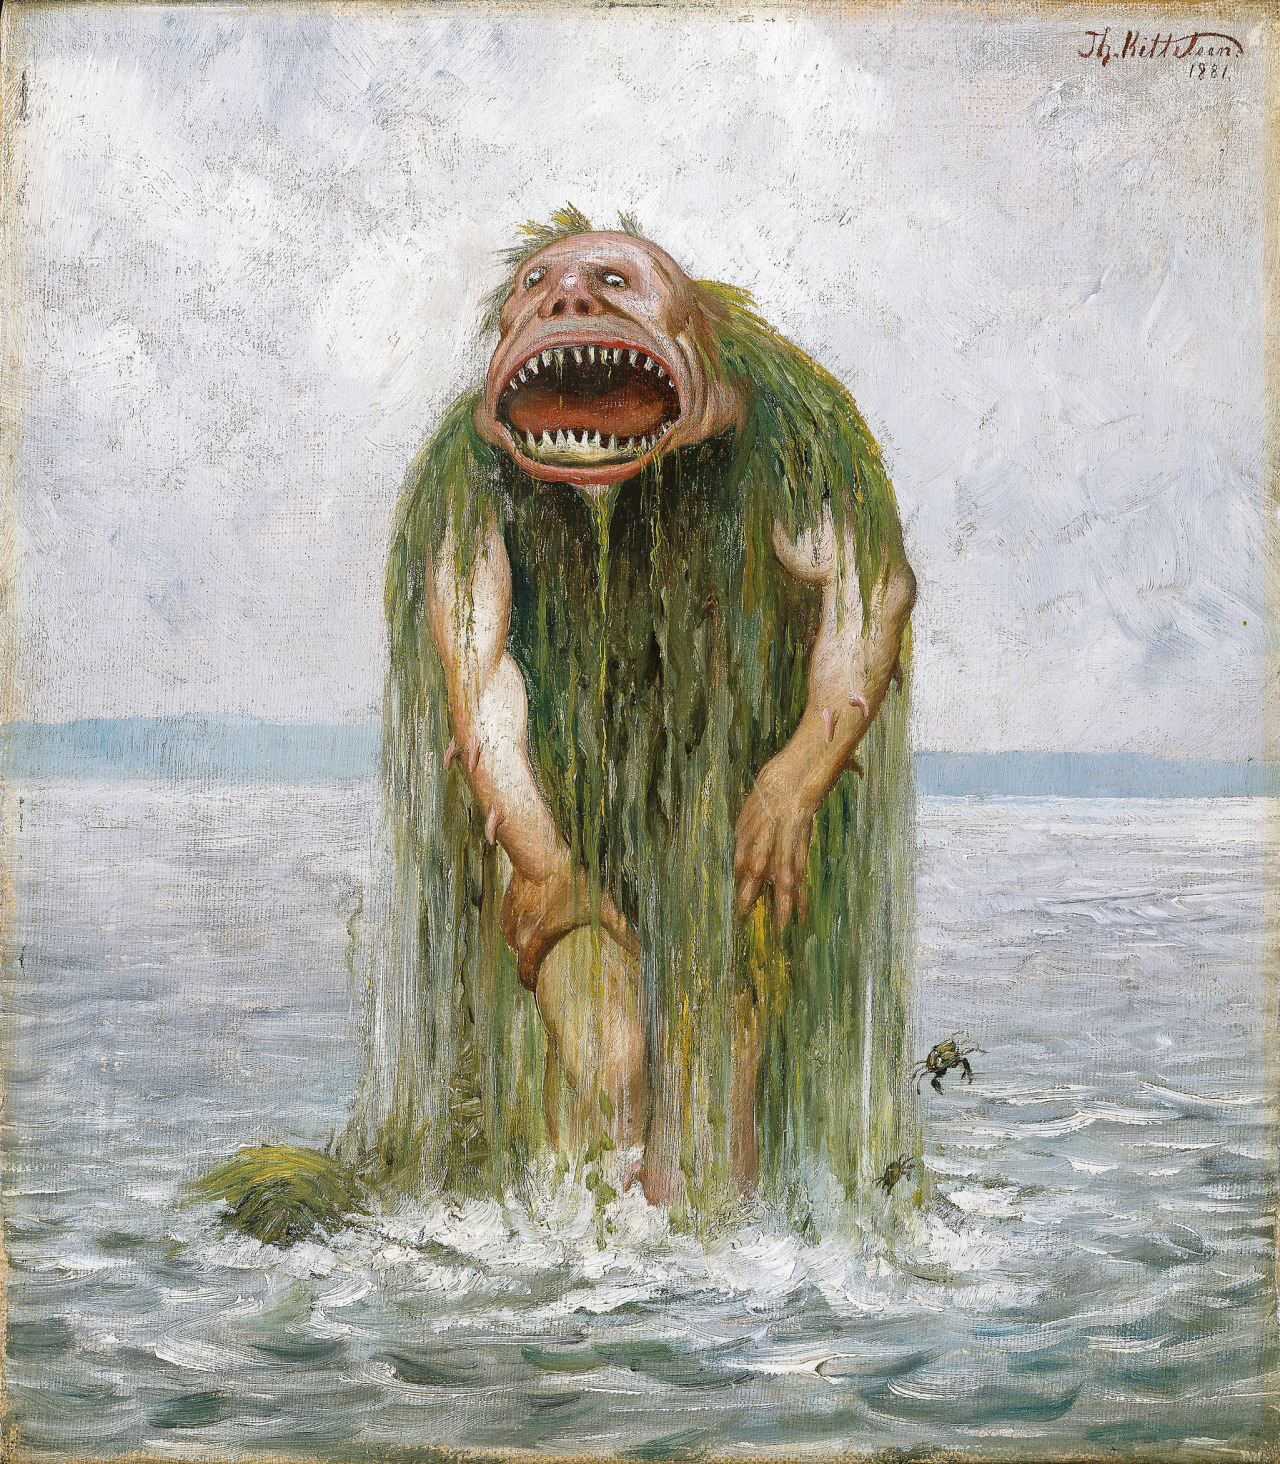 The Water Troll Who Eats Only Young Girls by Theodor Kittelsen, 1881